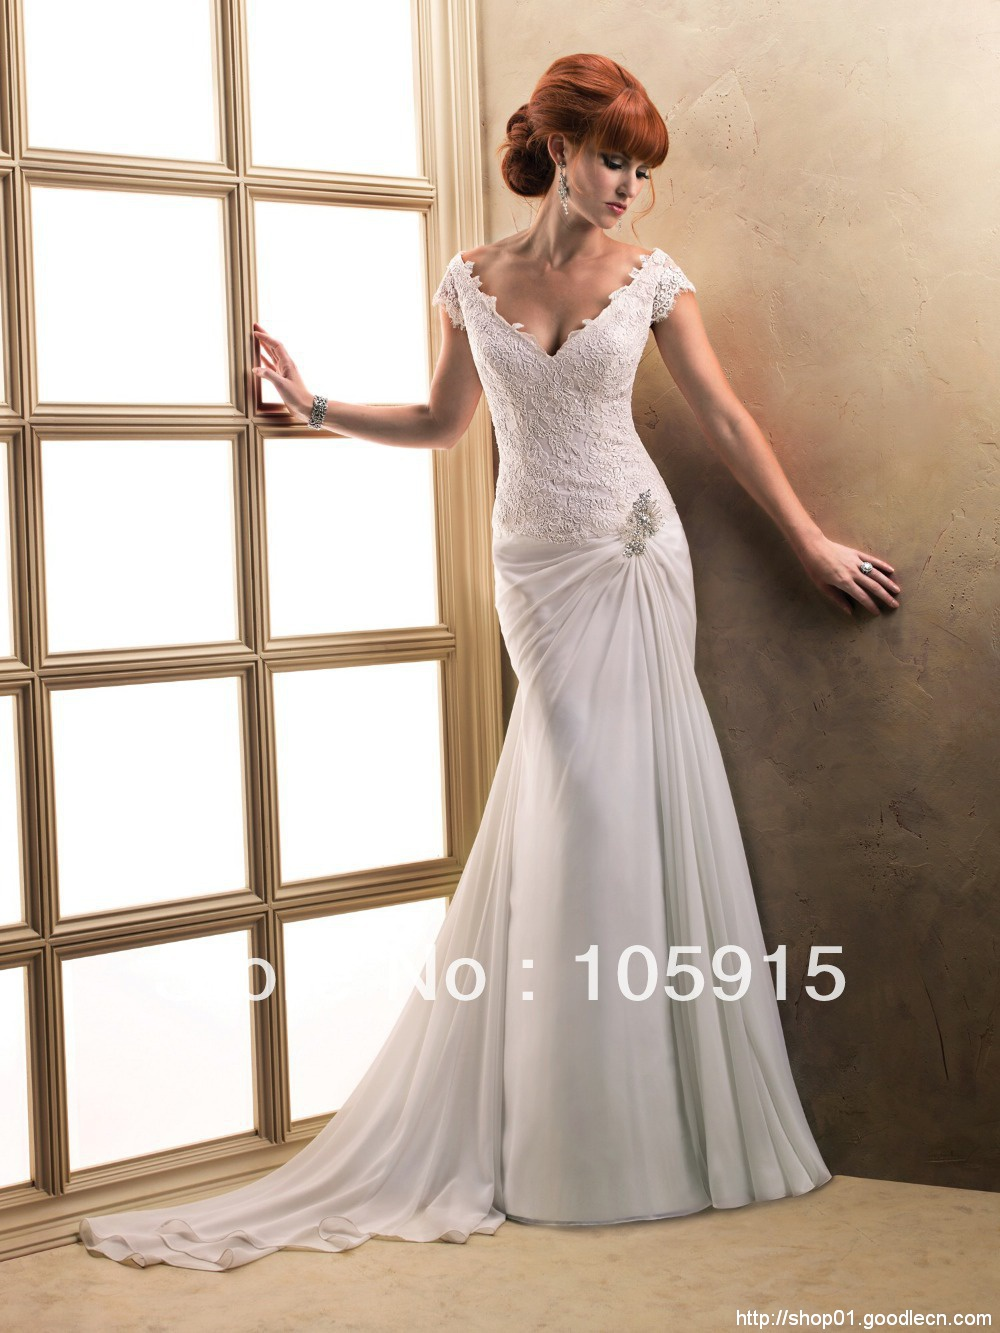 Sexy Charming Crystal Buttons V-Neck And Back Mermaid Simple White Beach Wedding Dresses Bride Wedding Gowns Chiffon SV18